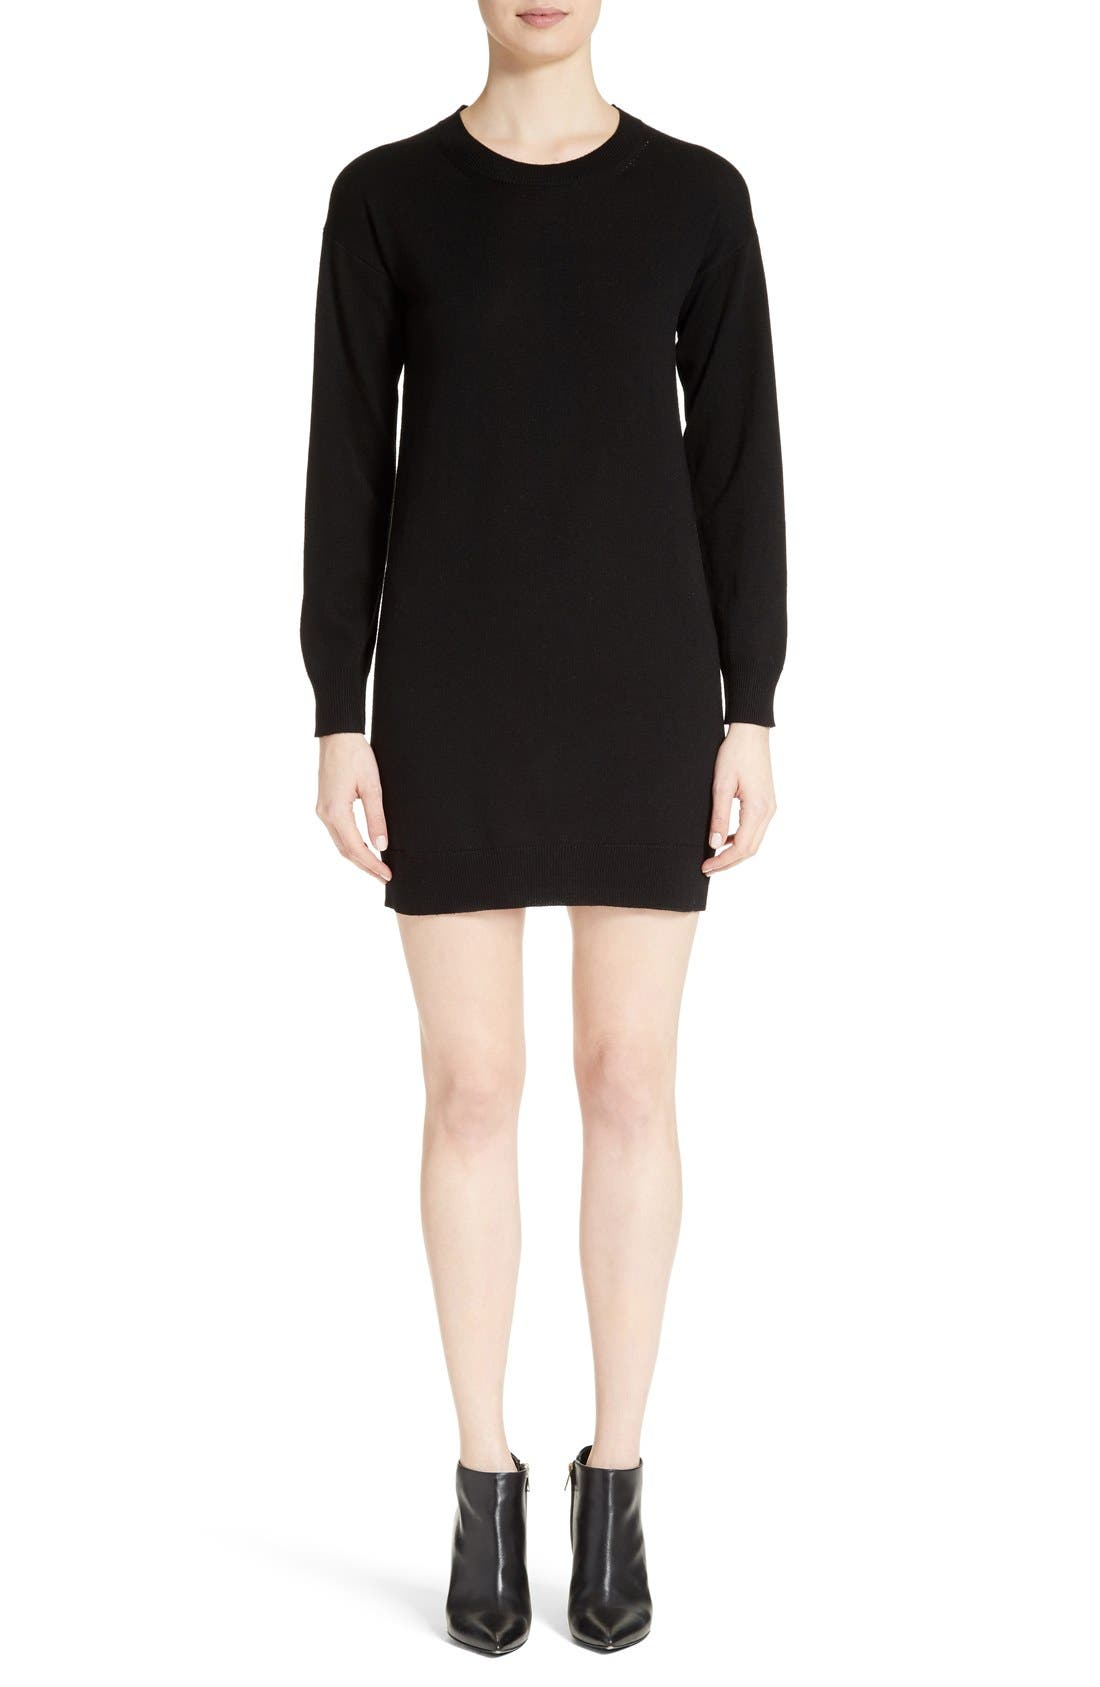 Burberry Alewater Elbow Patch Merino Wool Dress